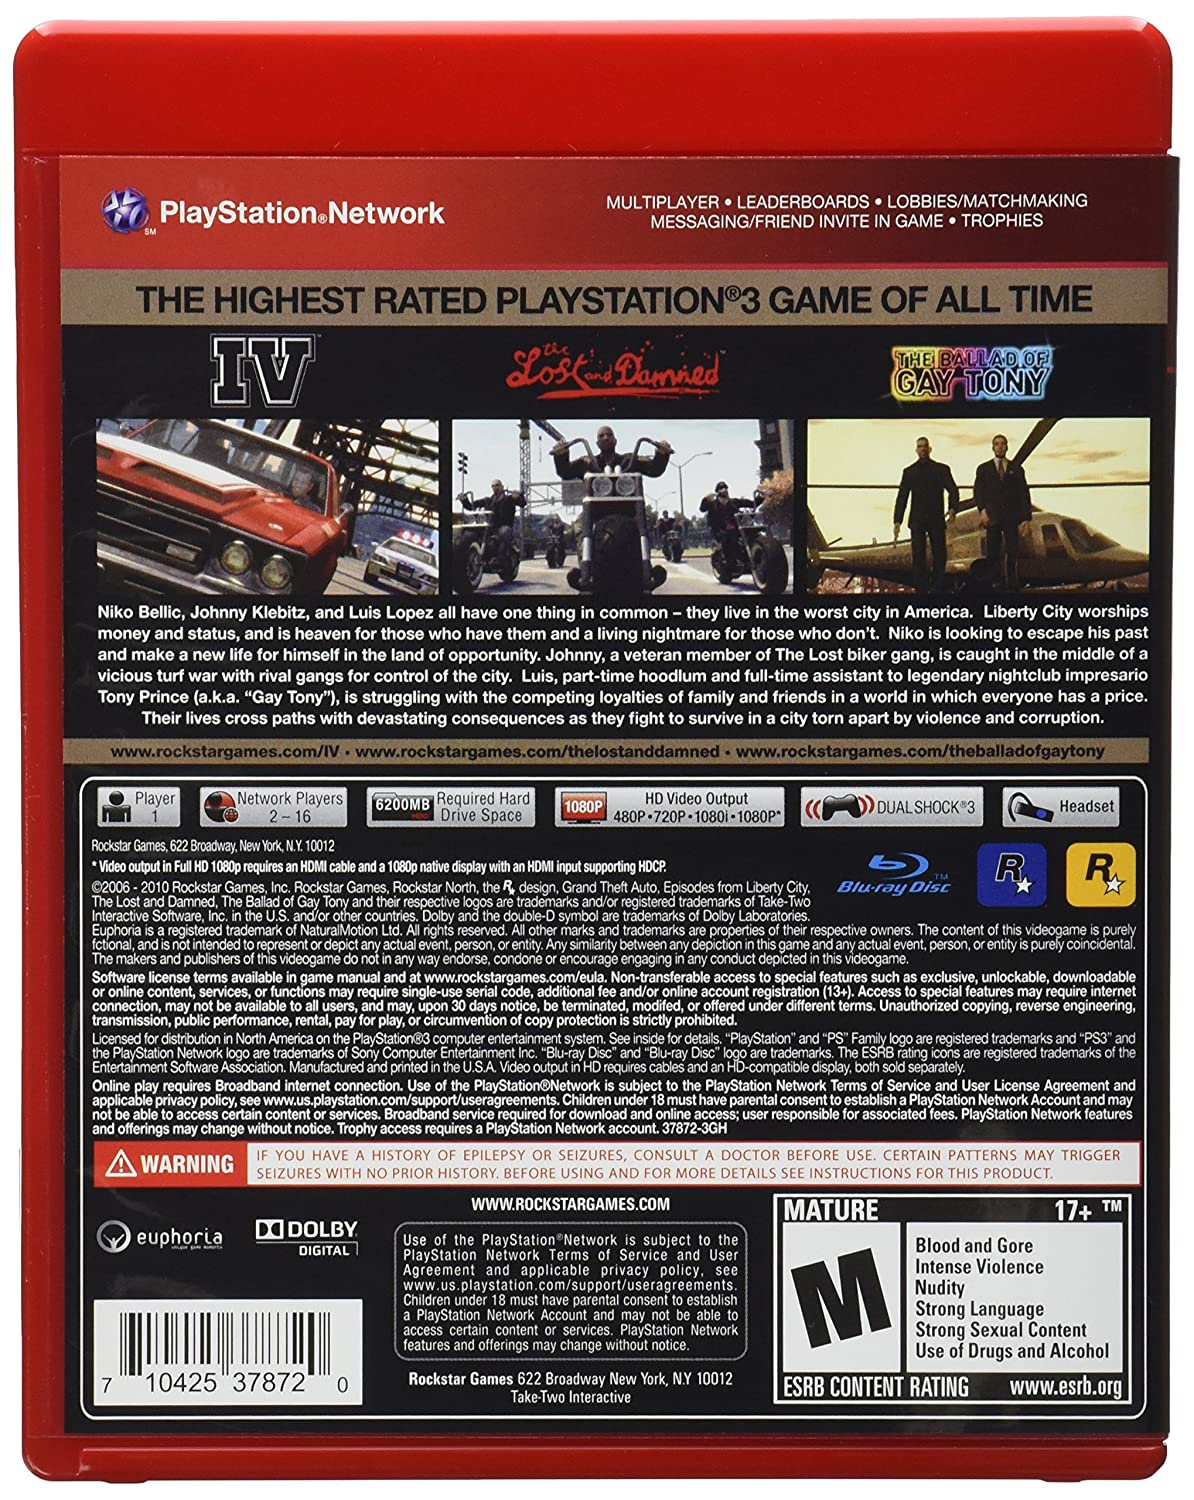 Grand Theft Auto IV - Complete Edition GH - PlayStation 3: Amazon